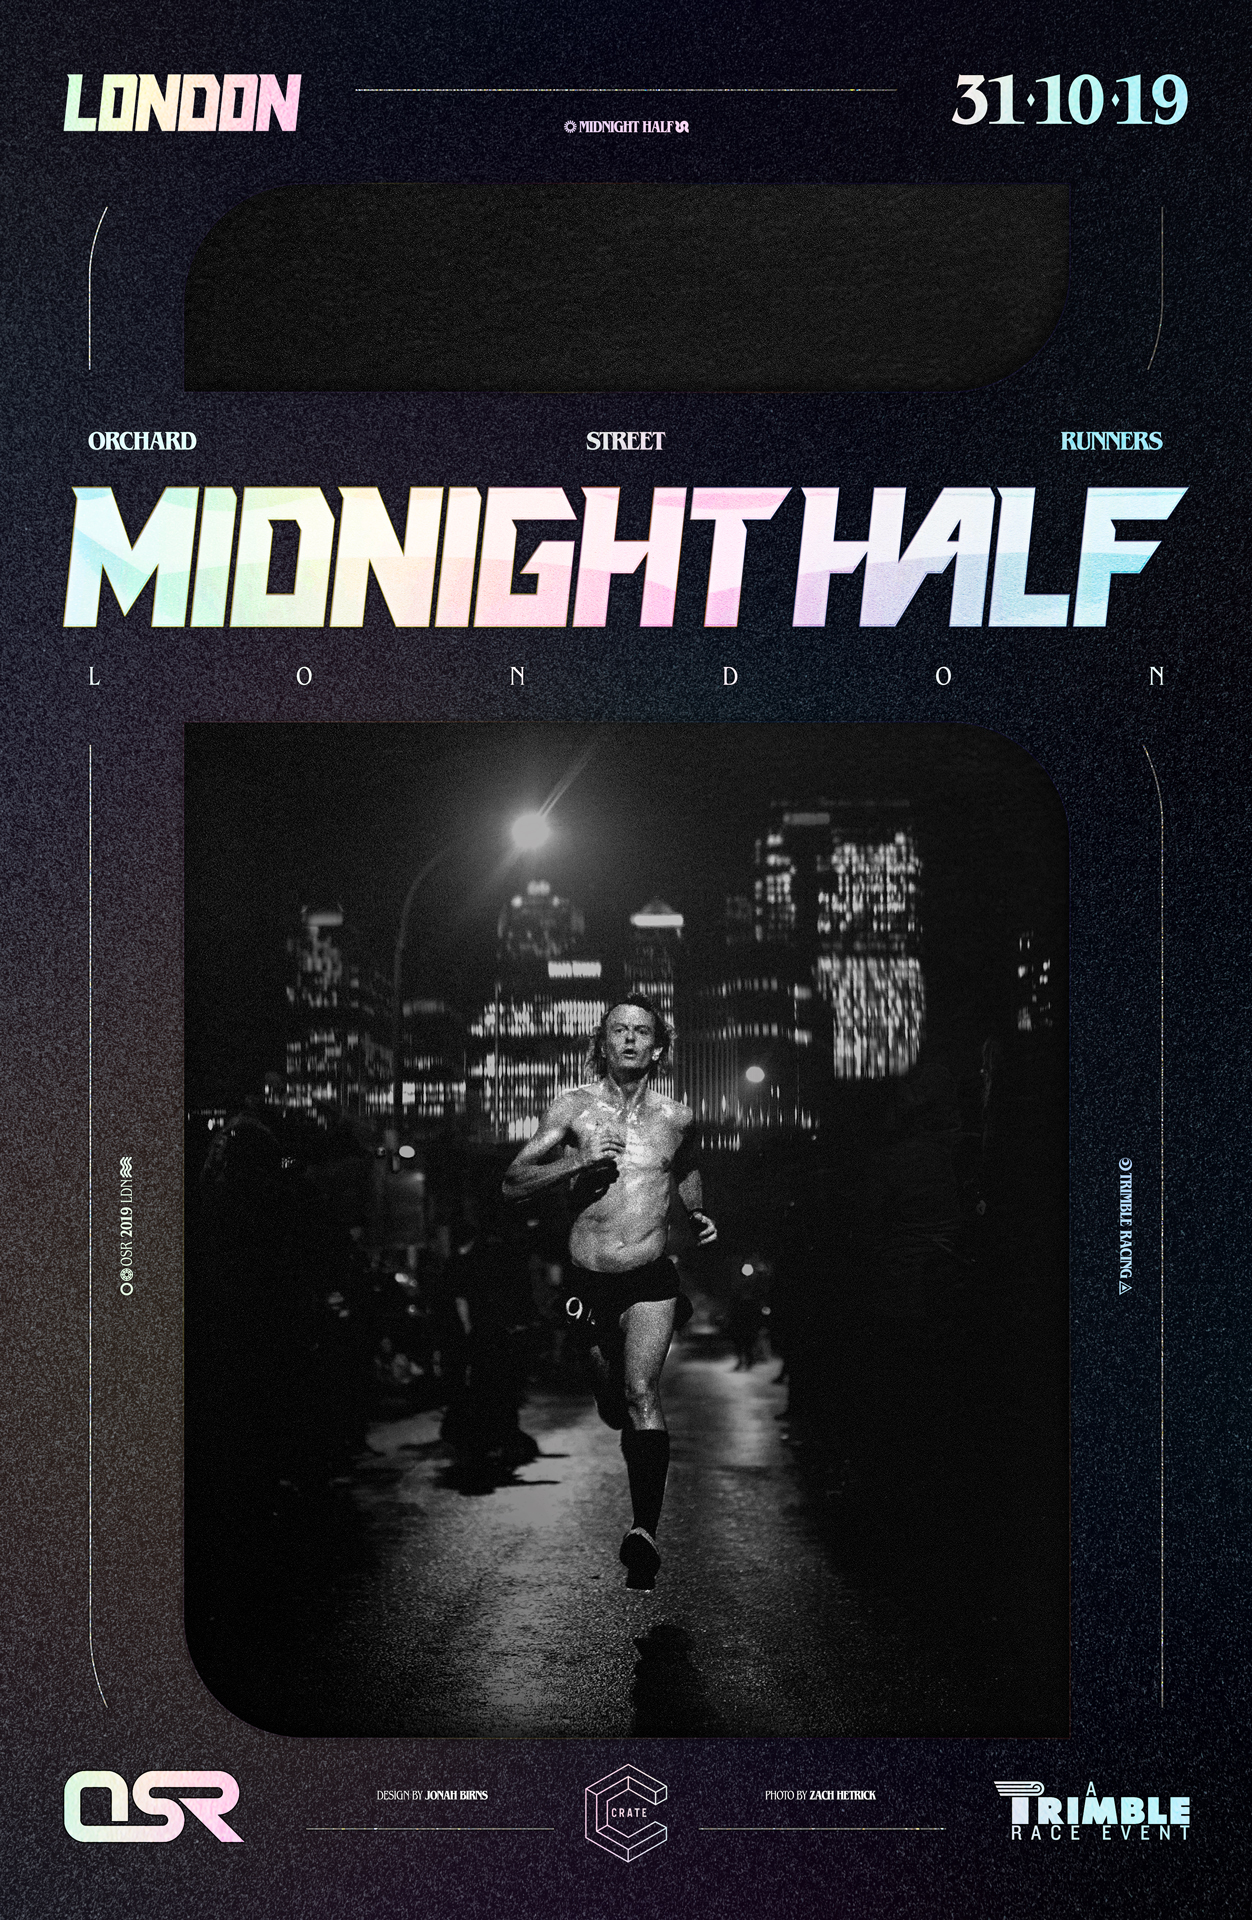 MidnightHalf2019_LDN-Poster_11X17_Screen